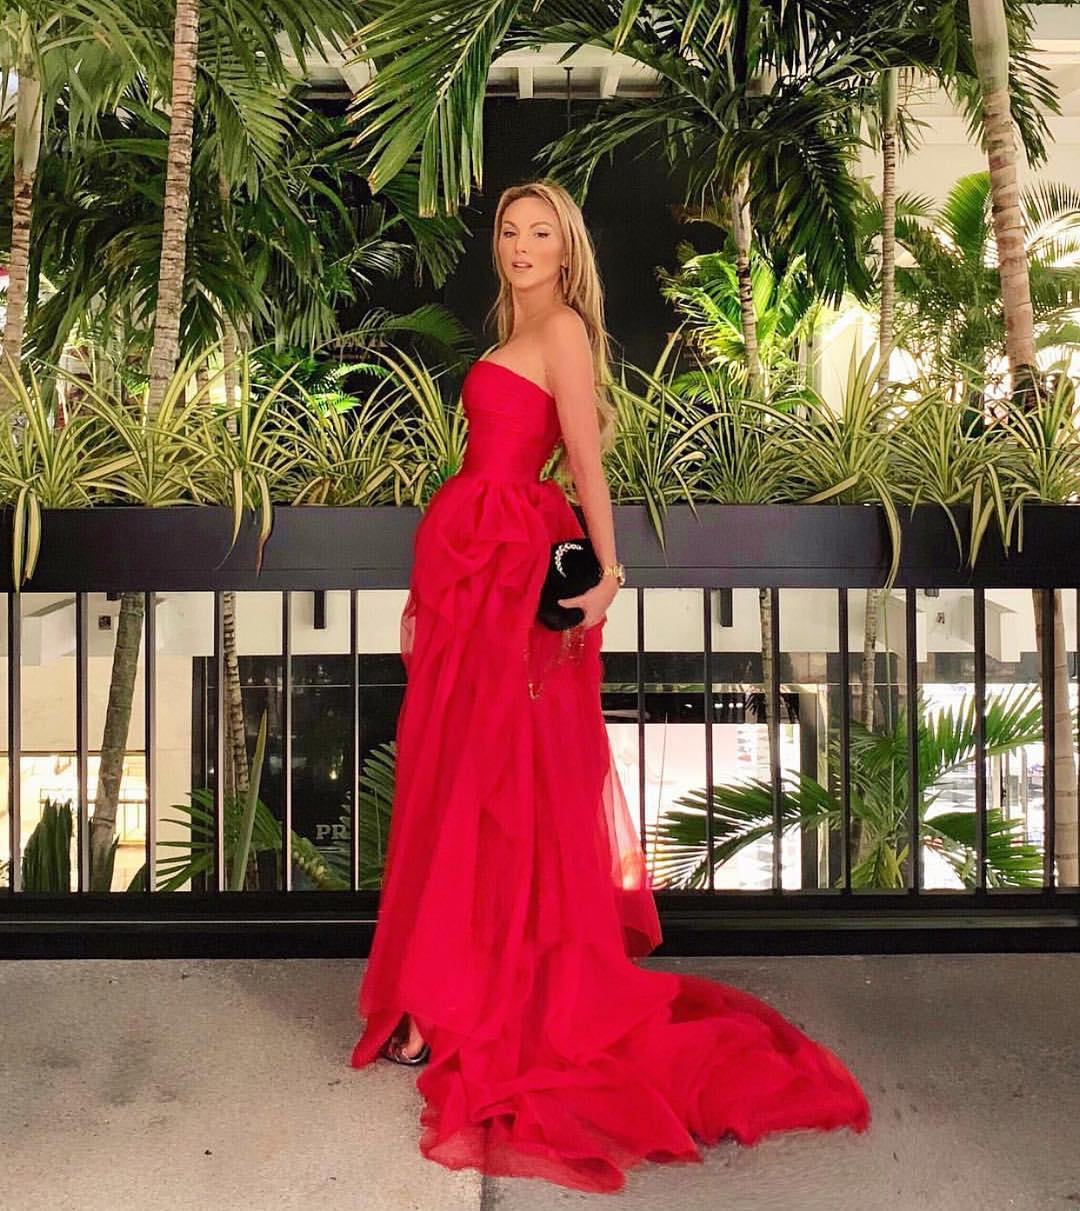 Strapless Maxi Dress In Red For Very Special Parties 2019